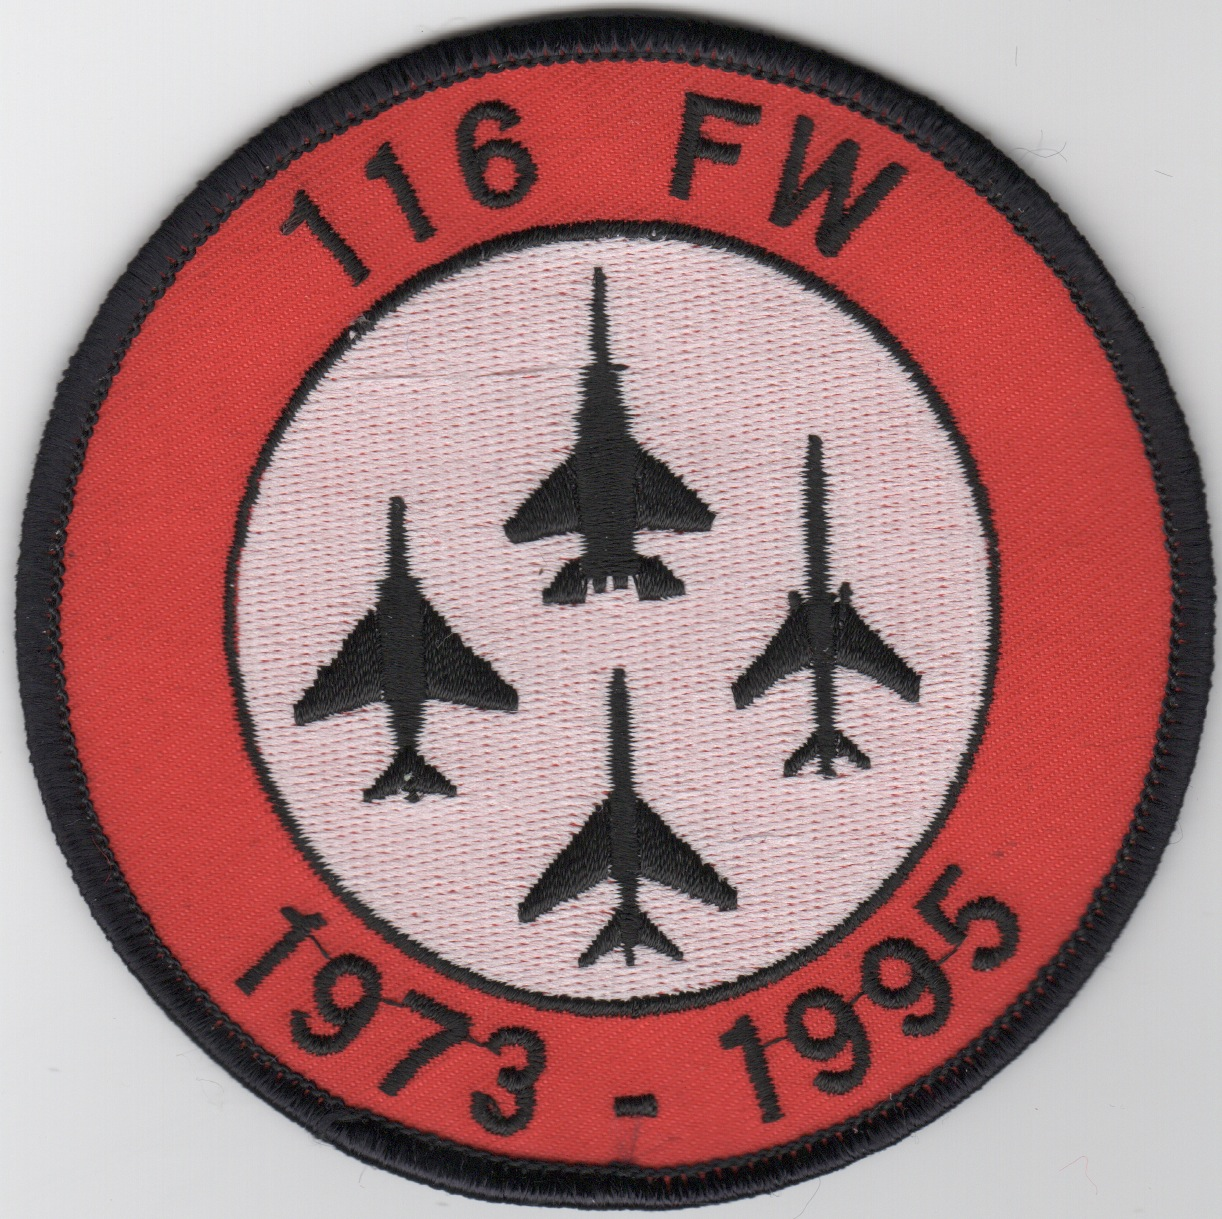 116FW 1973-1995 Fighter Decomm Patch (Original)